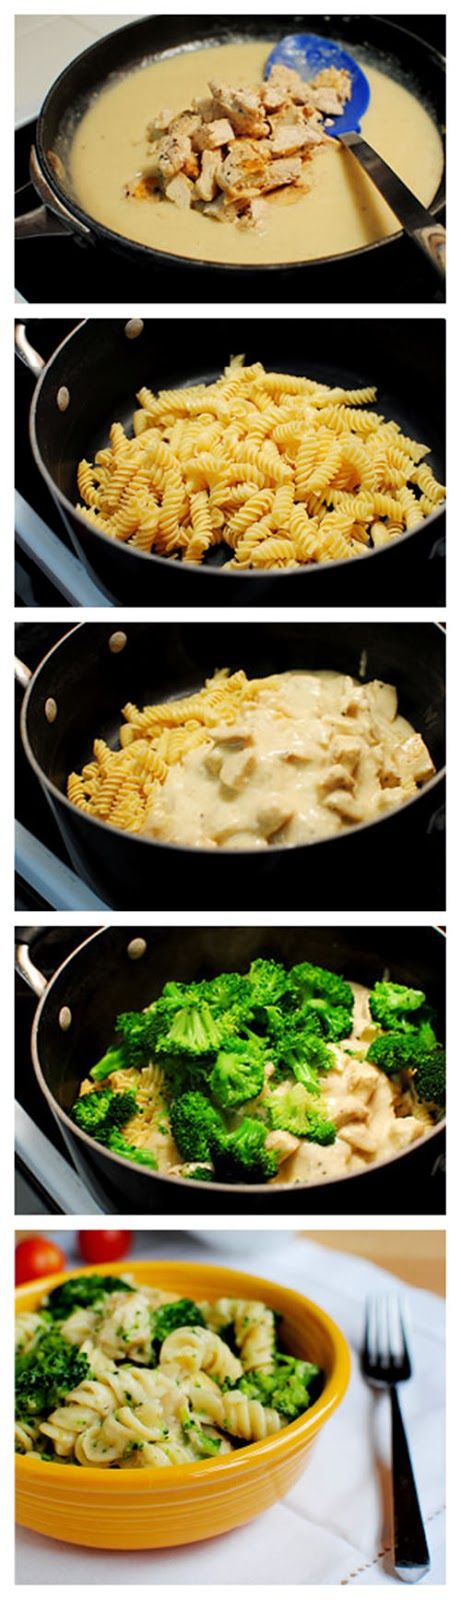 Skinny Chicken Broccoli Alfredo Recipe ** my tweak adaptations .... skip pasta and sub in sauted fresh mushrooms